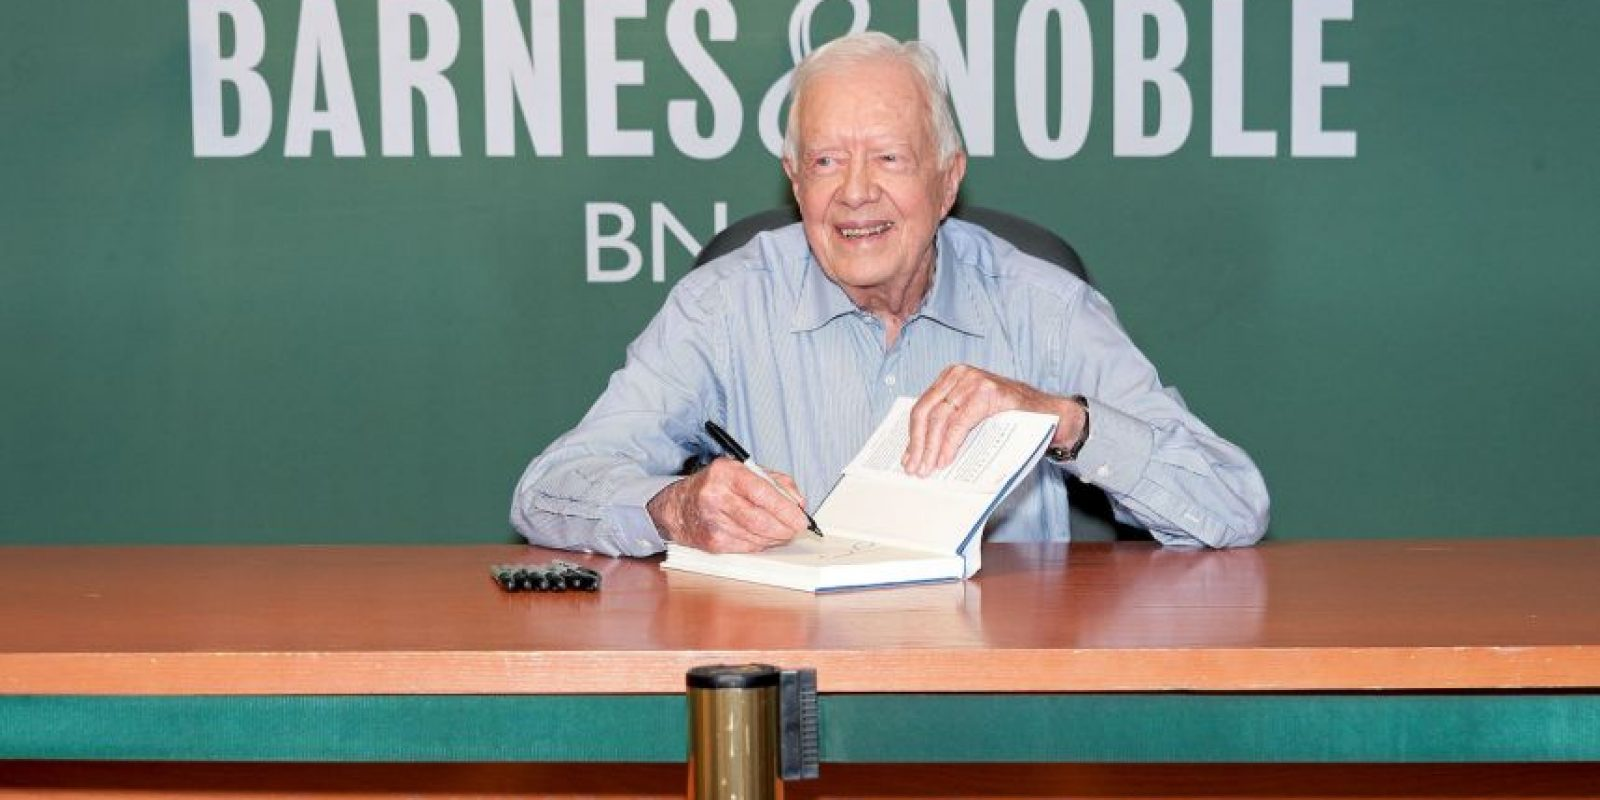 Jimmy Carter fue el presidente número 39 de Estados Unidos. Foto: Getty Images